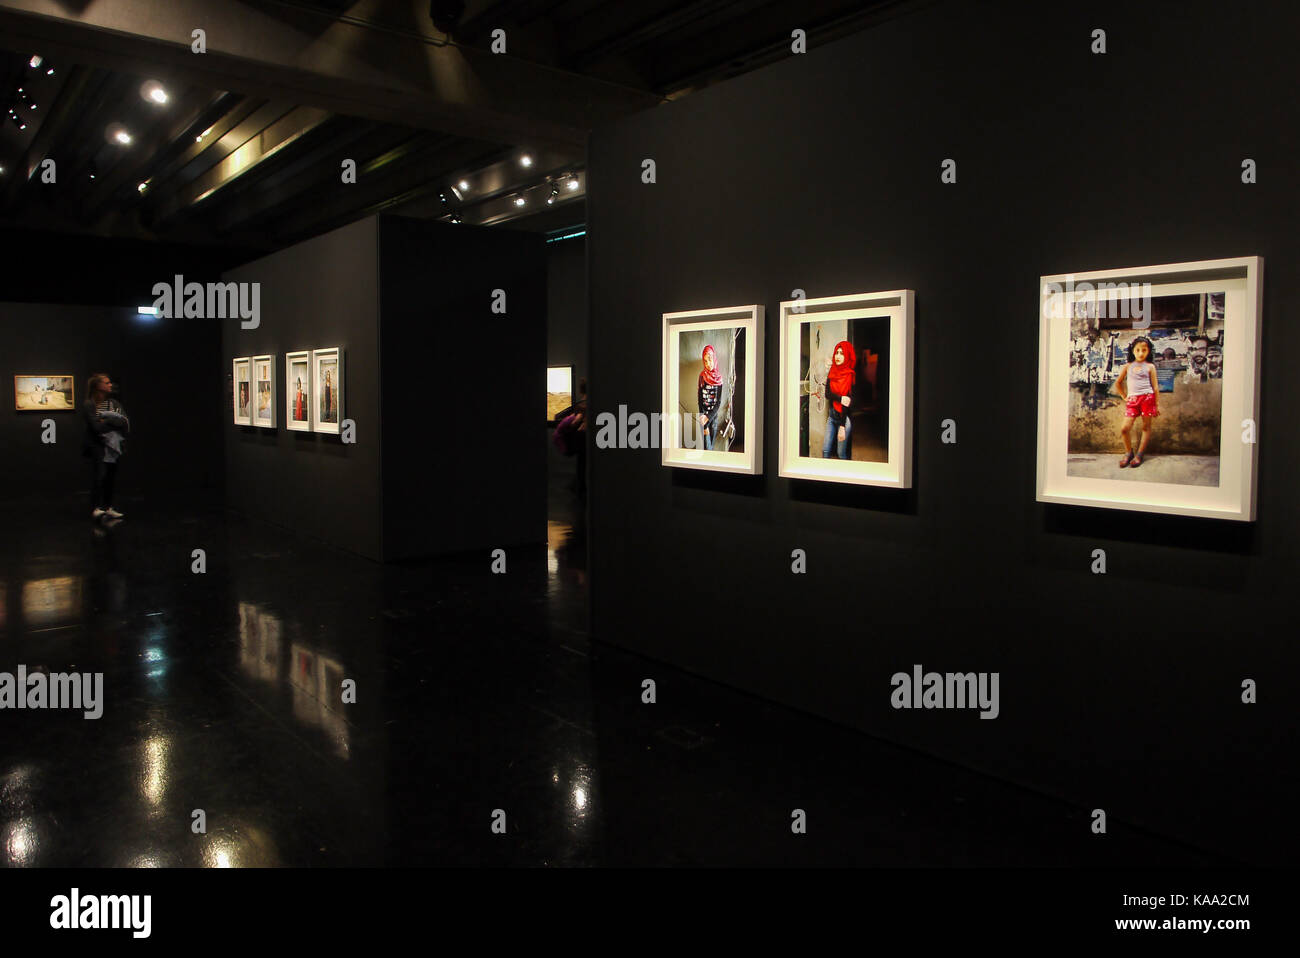 Arab World Institute (IMA) shelters the Second Biennial of Photography in the Contemporary Arab World, Paris France - Stock Image